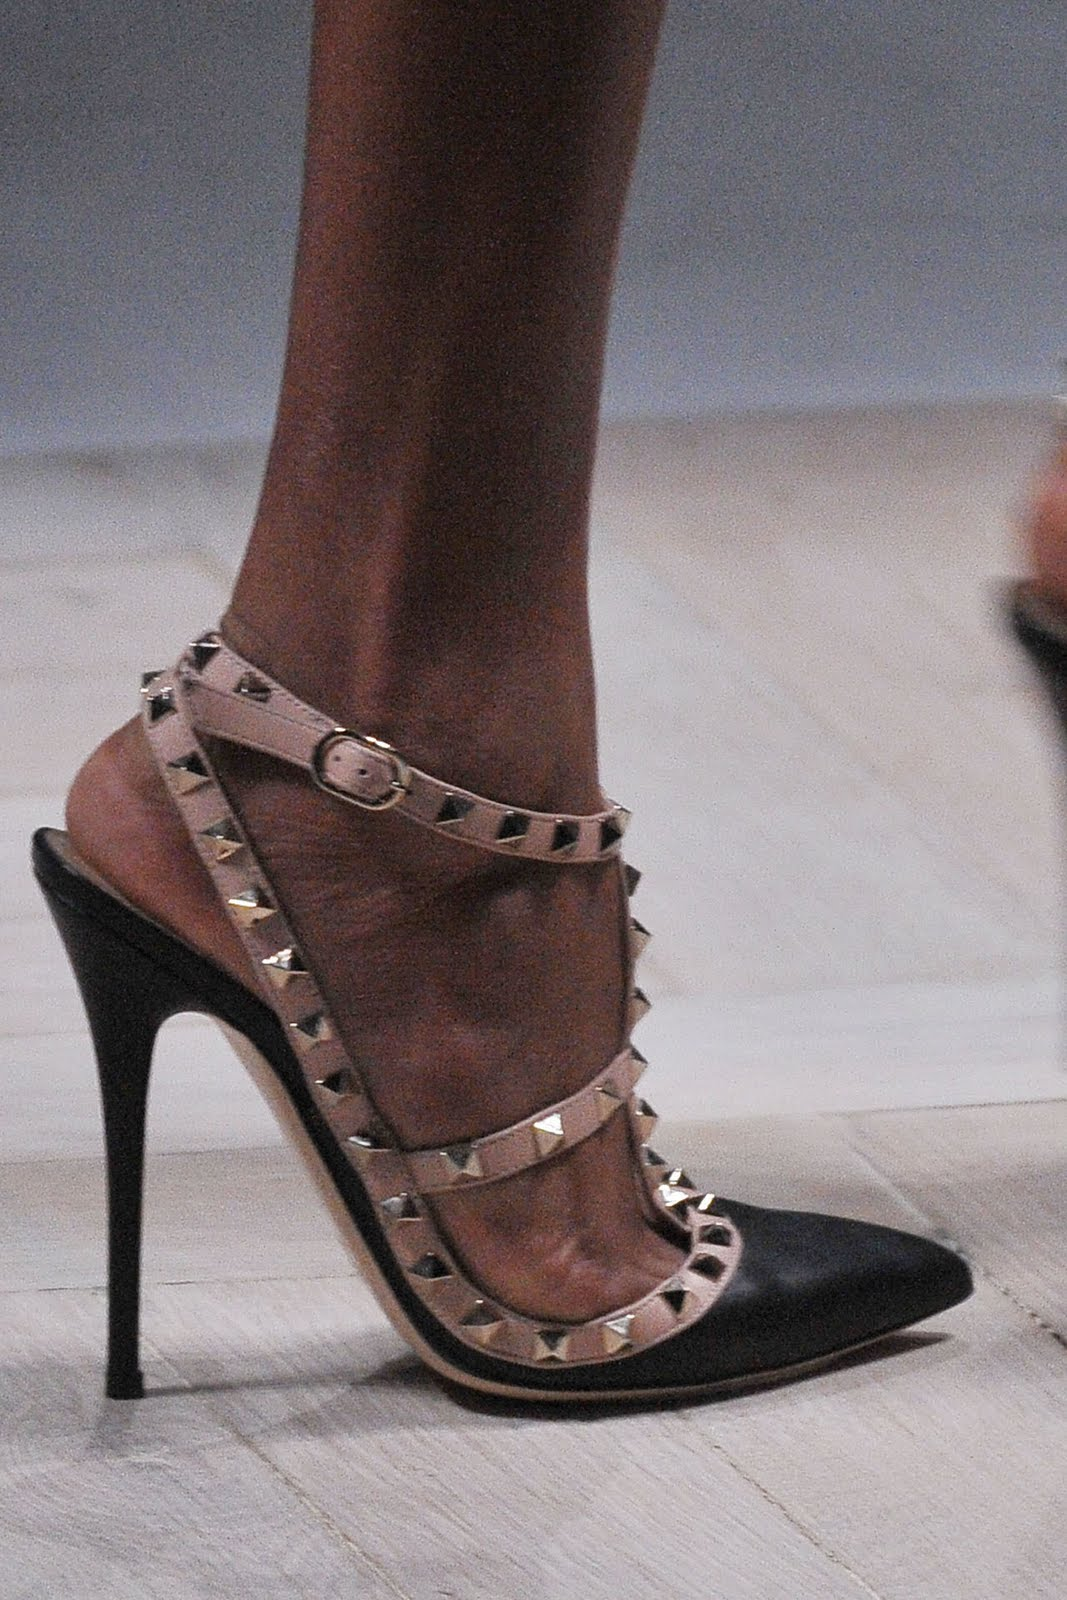 Nude Shoes for New Season